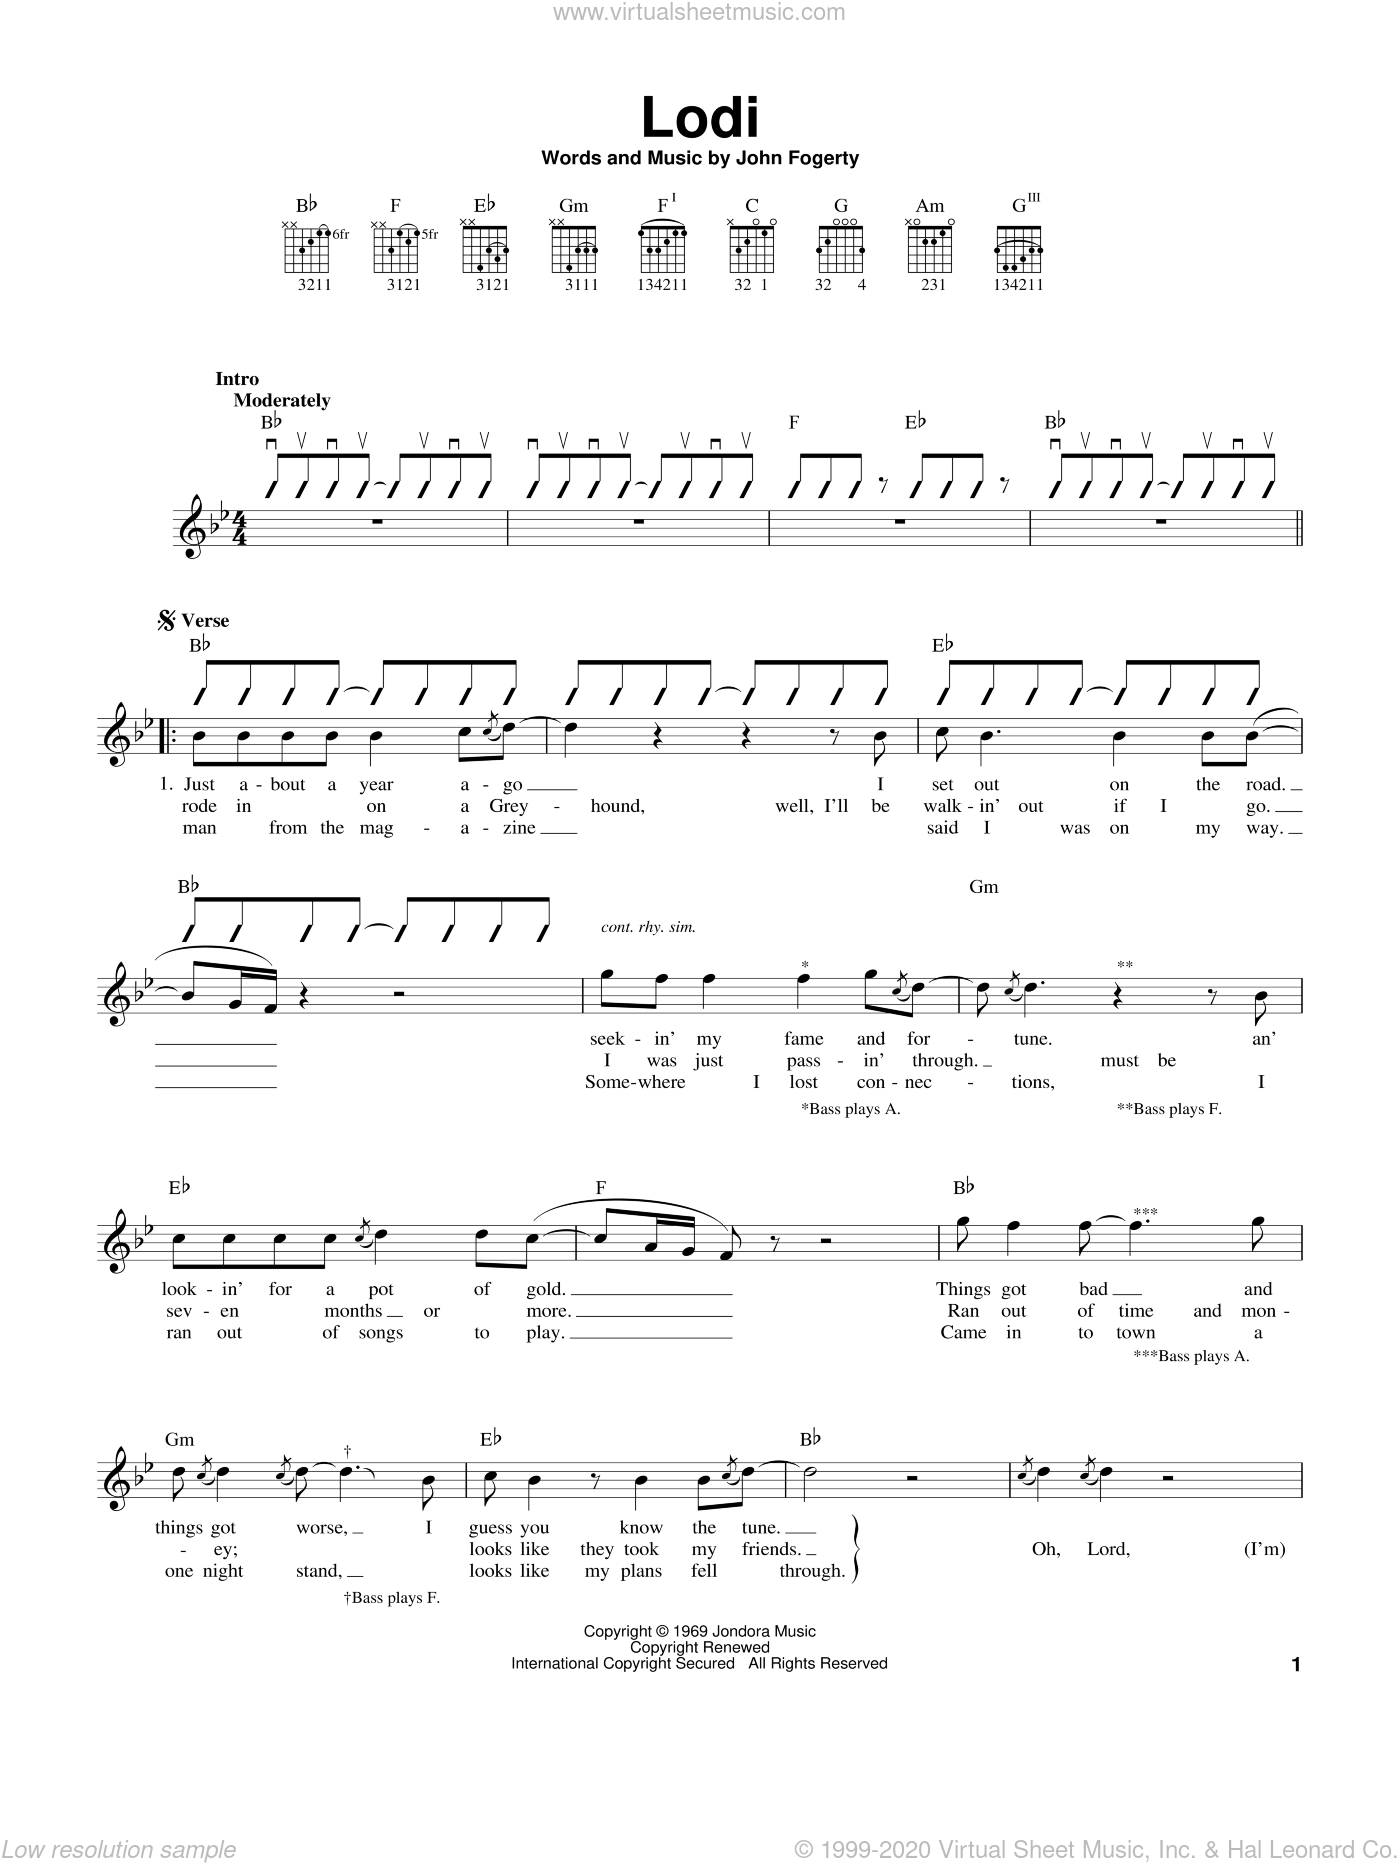 Revival - Lodi sheet music for guitar solo (chords) [PDF]